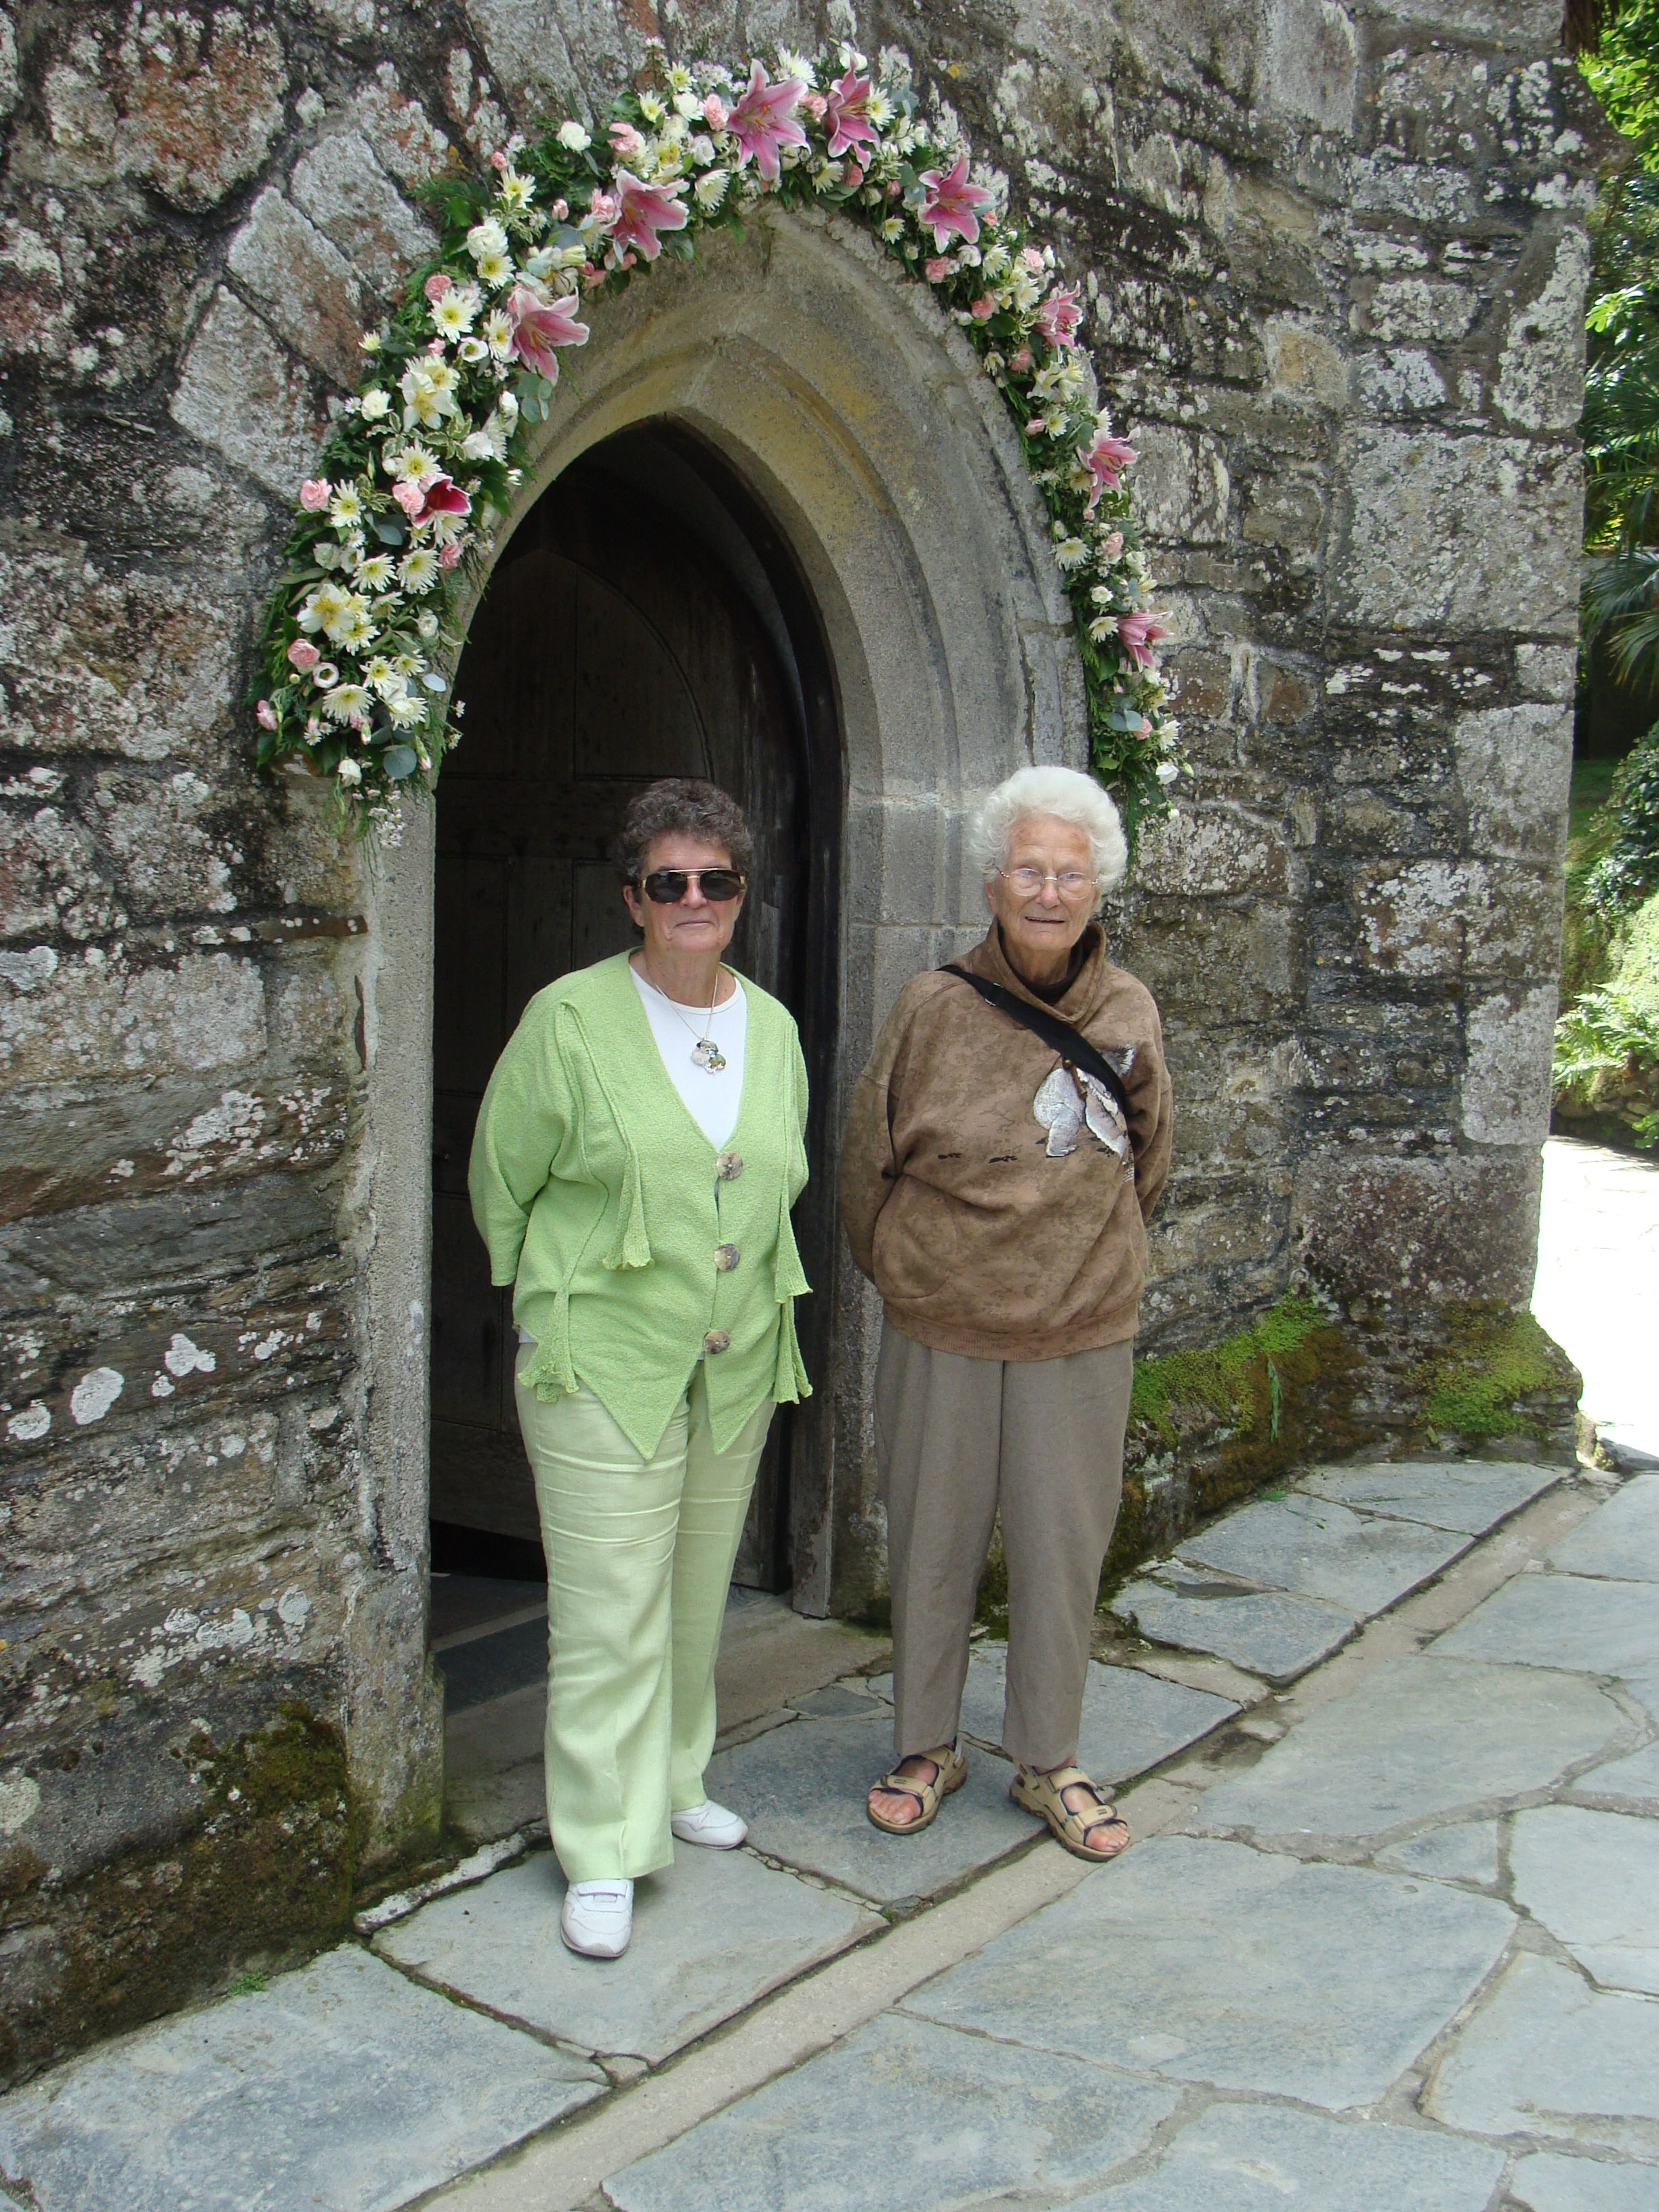 Mum and Maz in St Just in Roseland